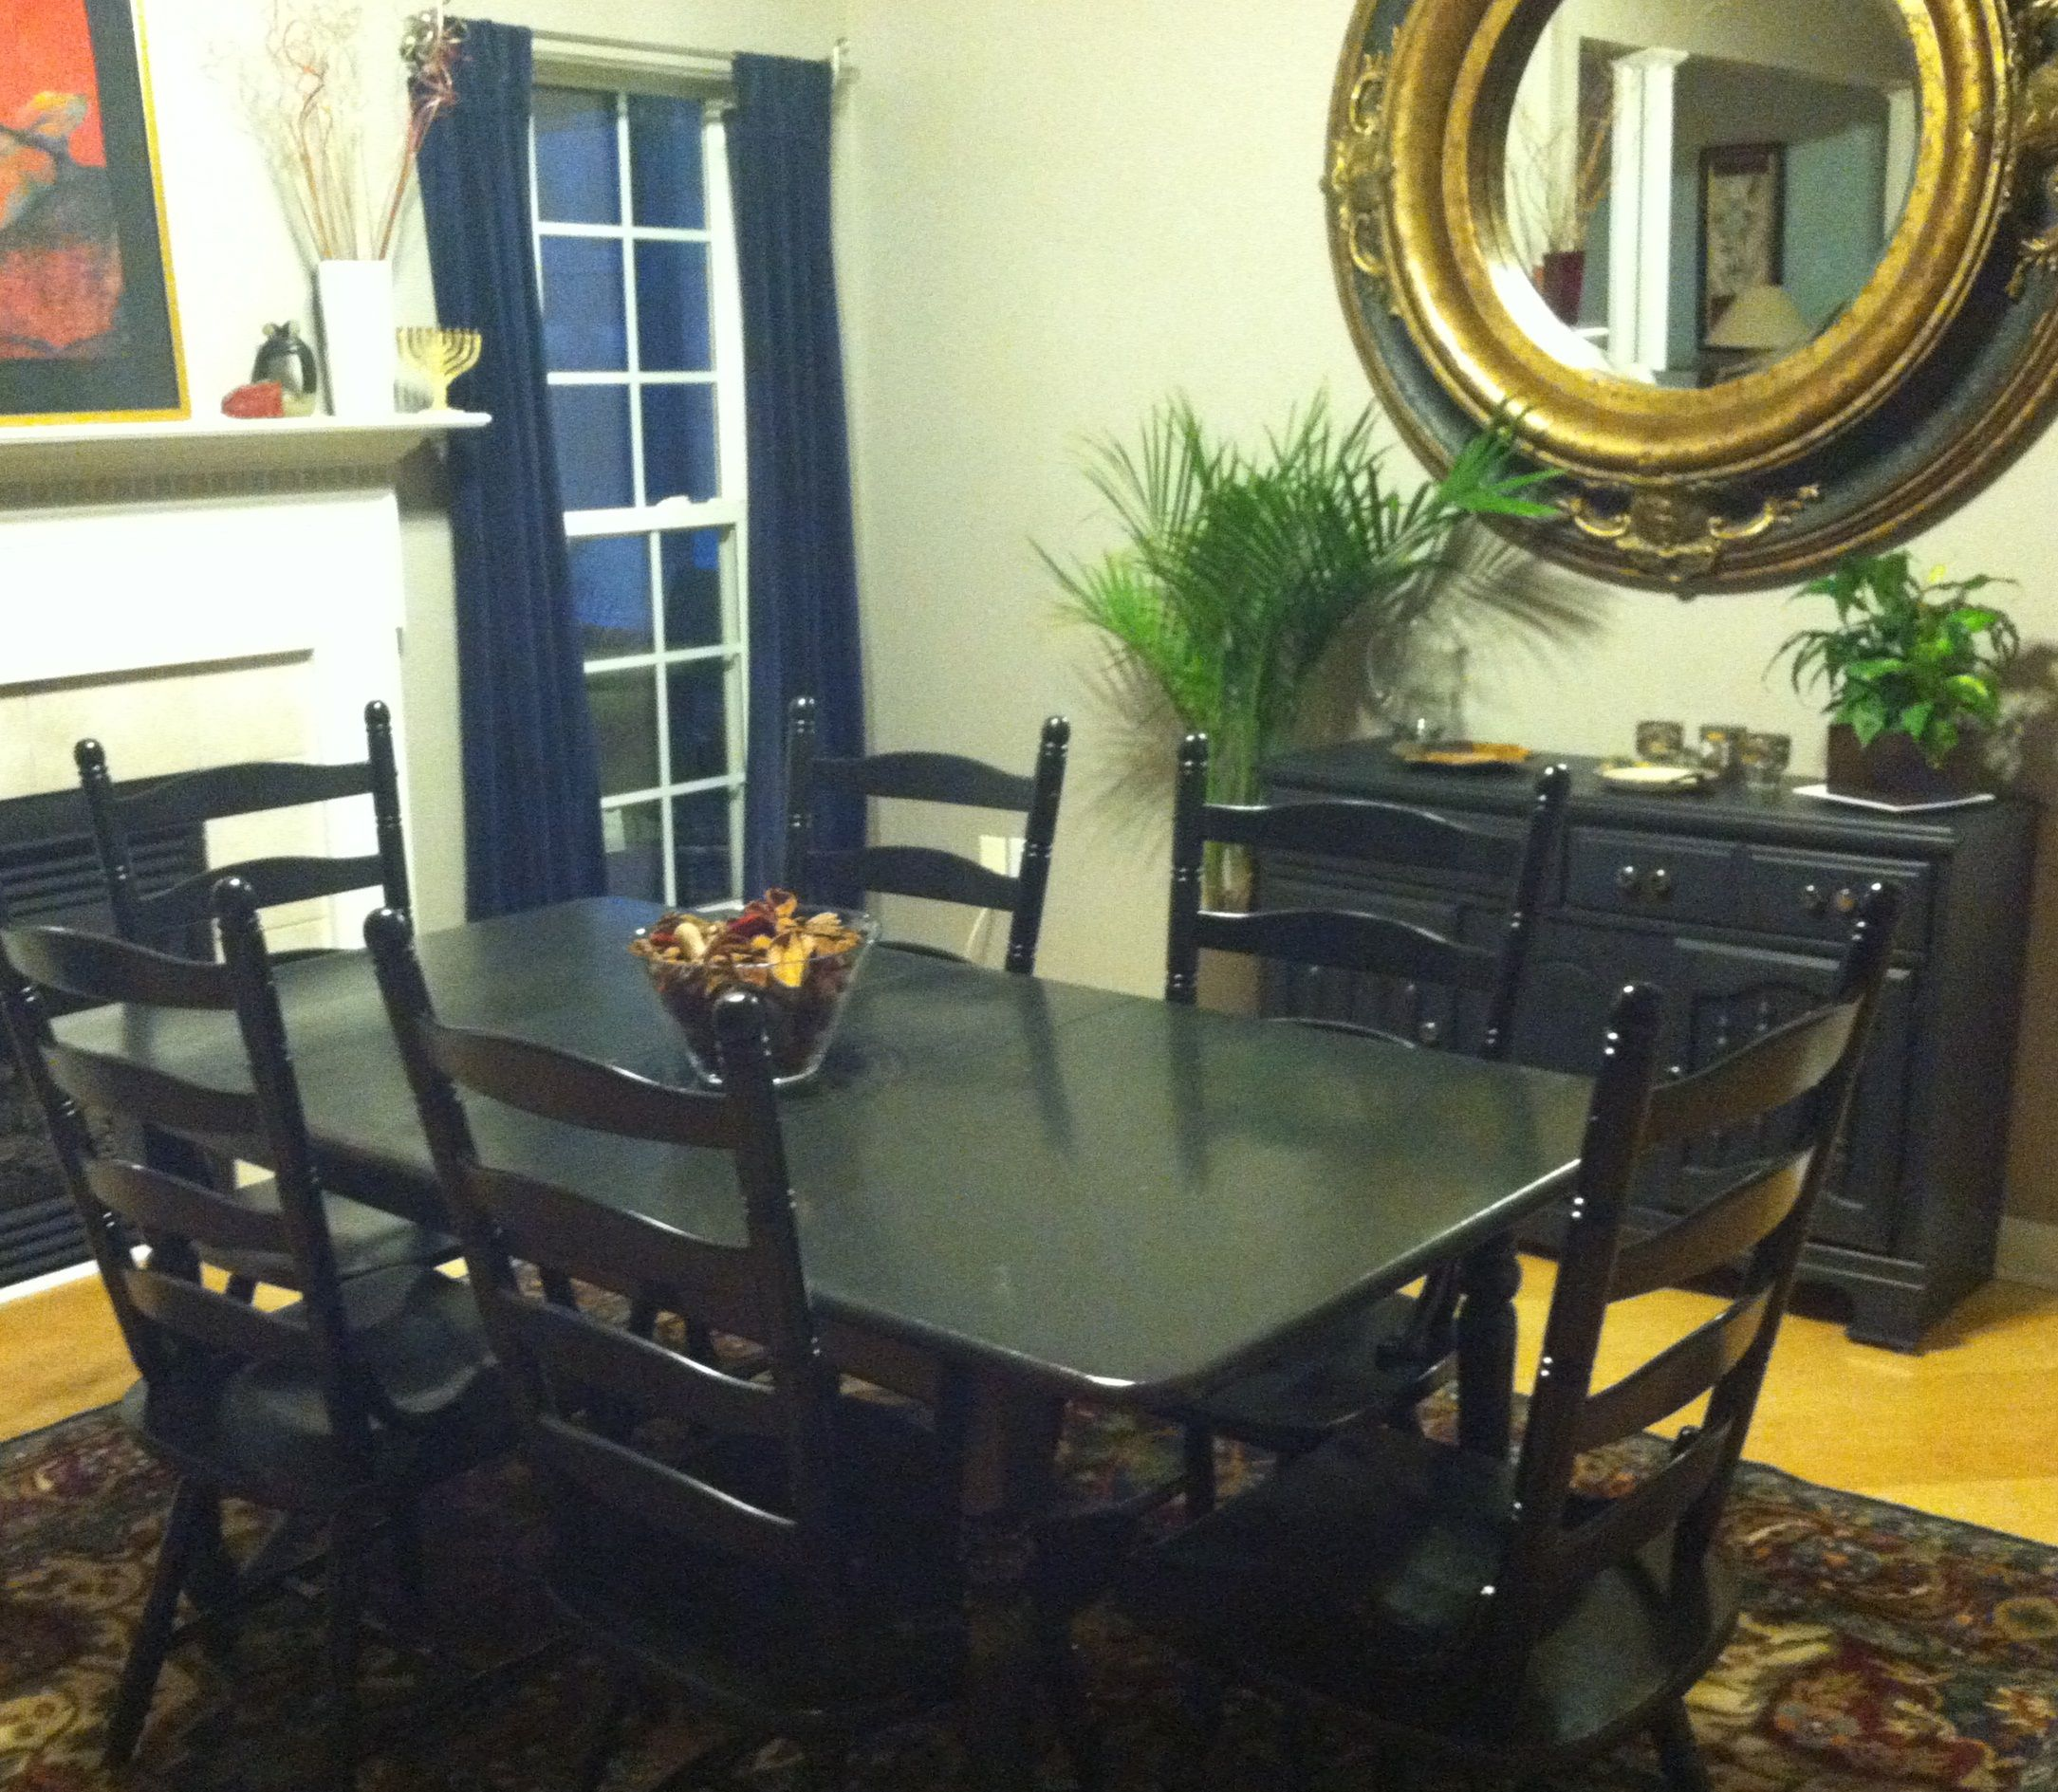 Kitchen Table In Bedroom: The Pine Dining Room Table And Chairs Have Been Repainted